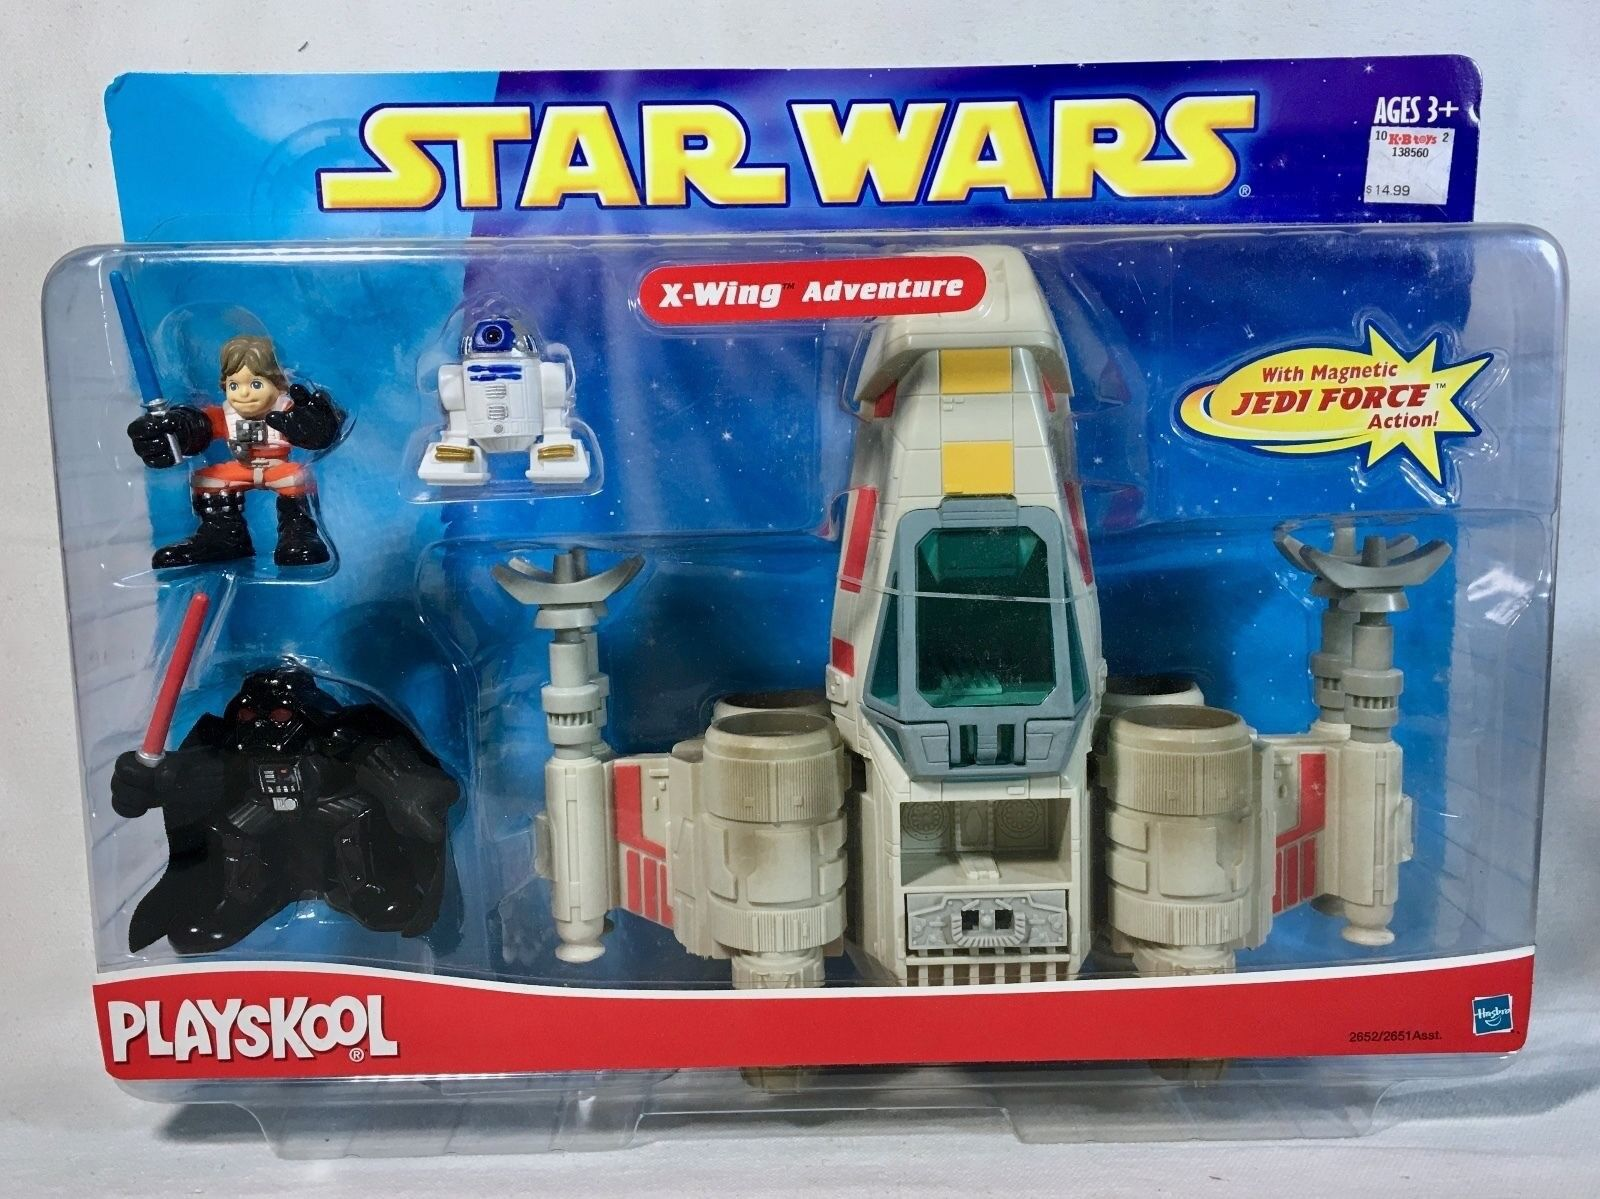 Set of 2 Playskool Star Wars Playsets  Duel with Darth Maul & X-Wing Adventure